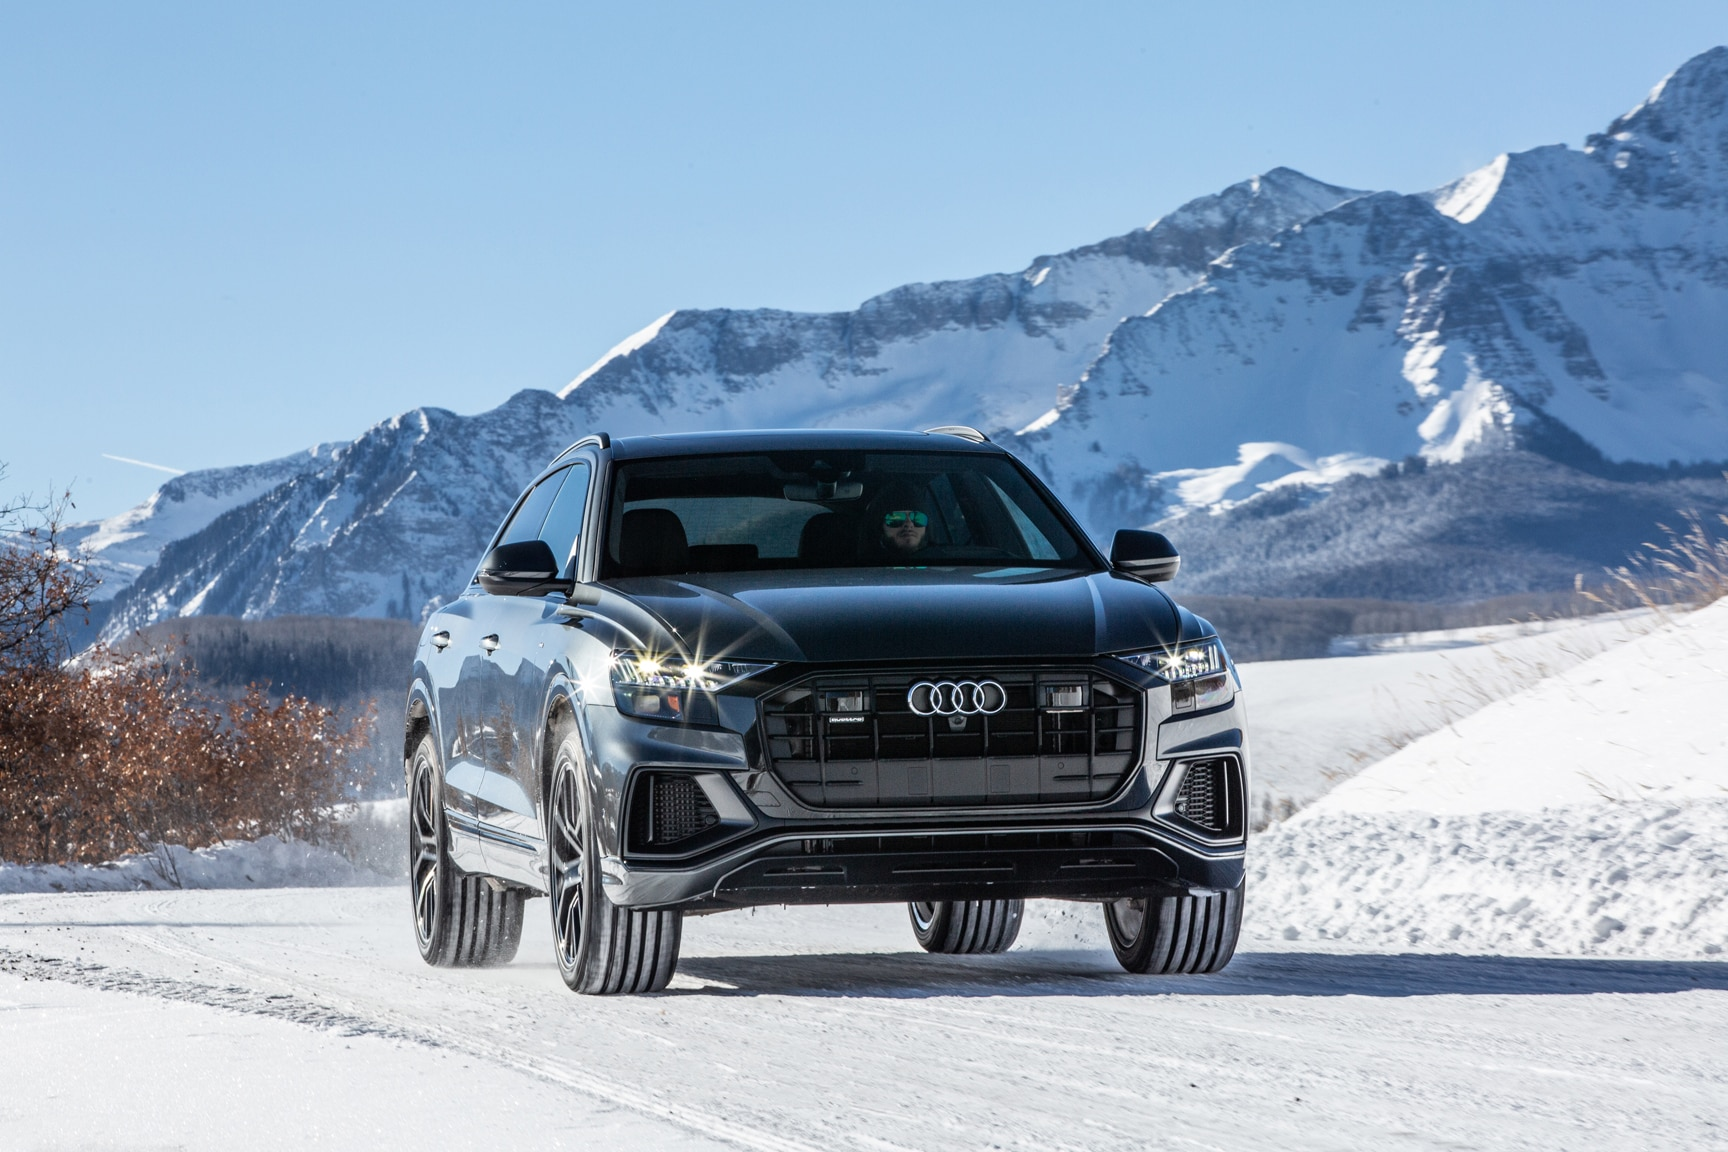 2019 Audi Q8 Review: You Don't Need To Drive It To Get It